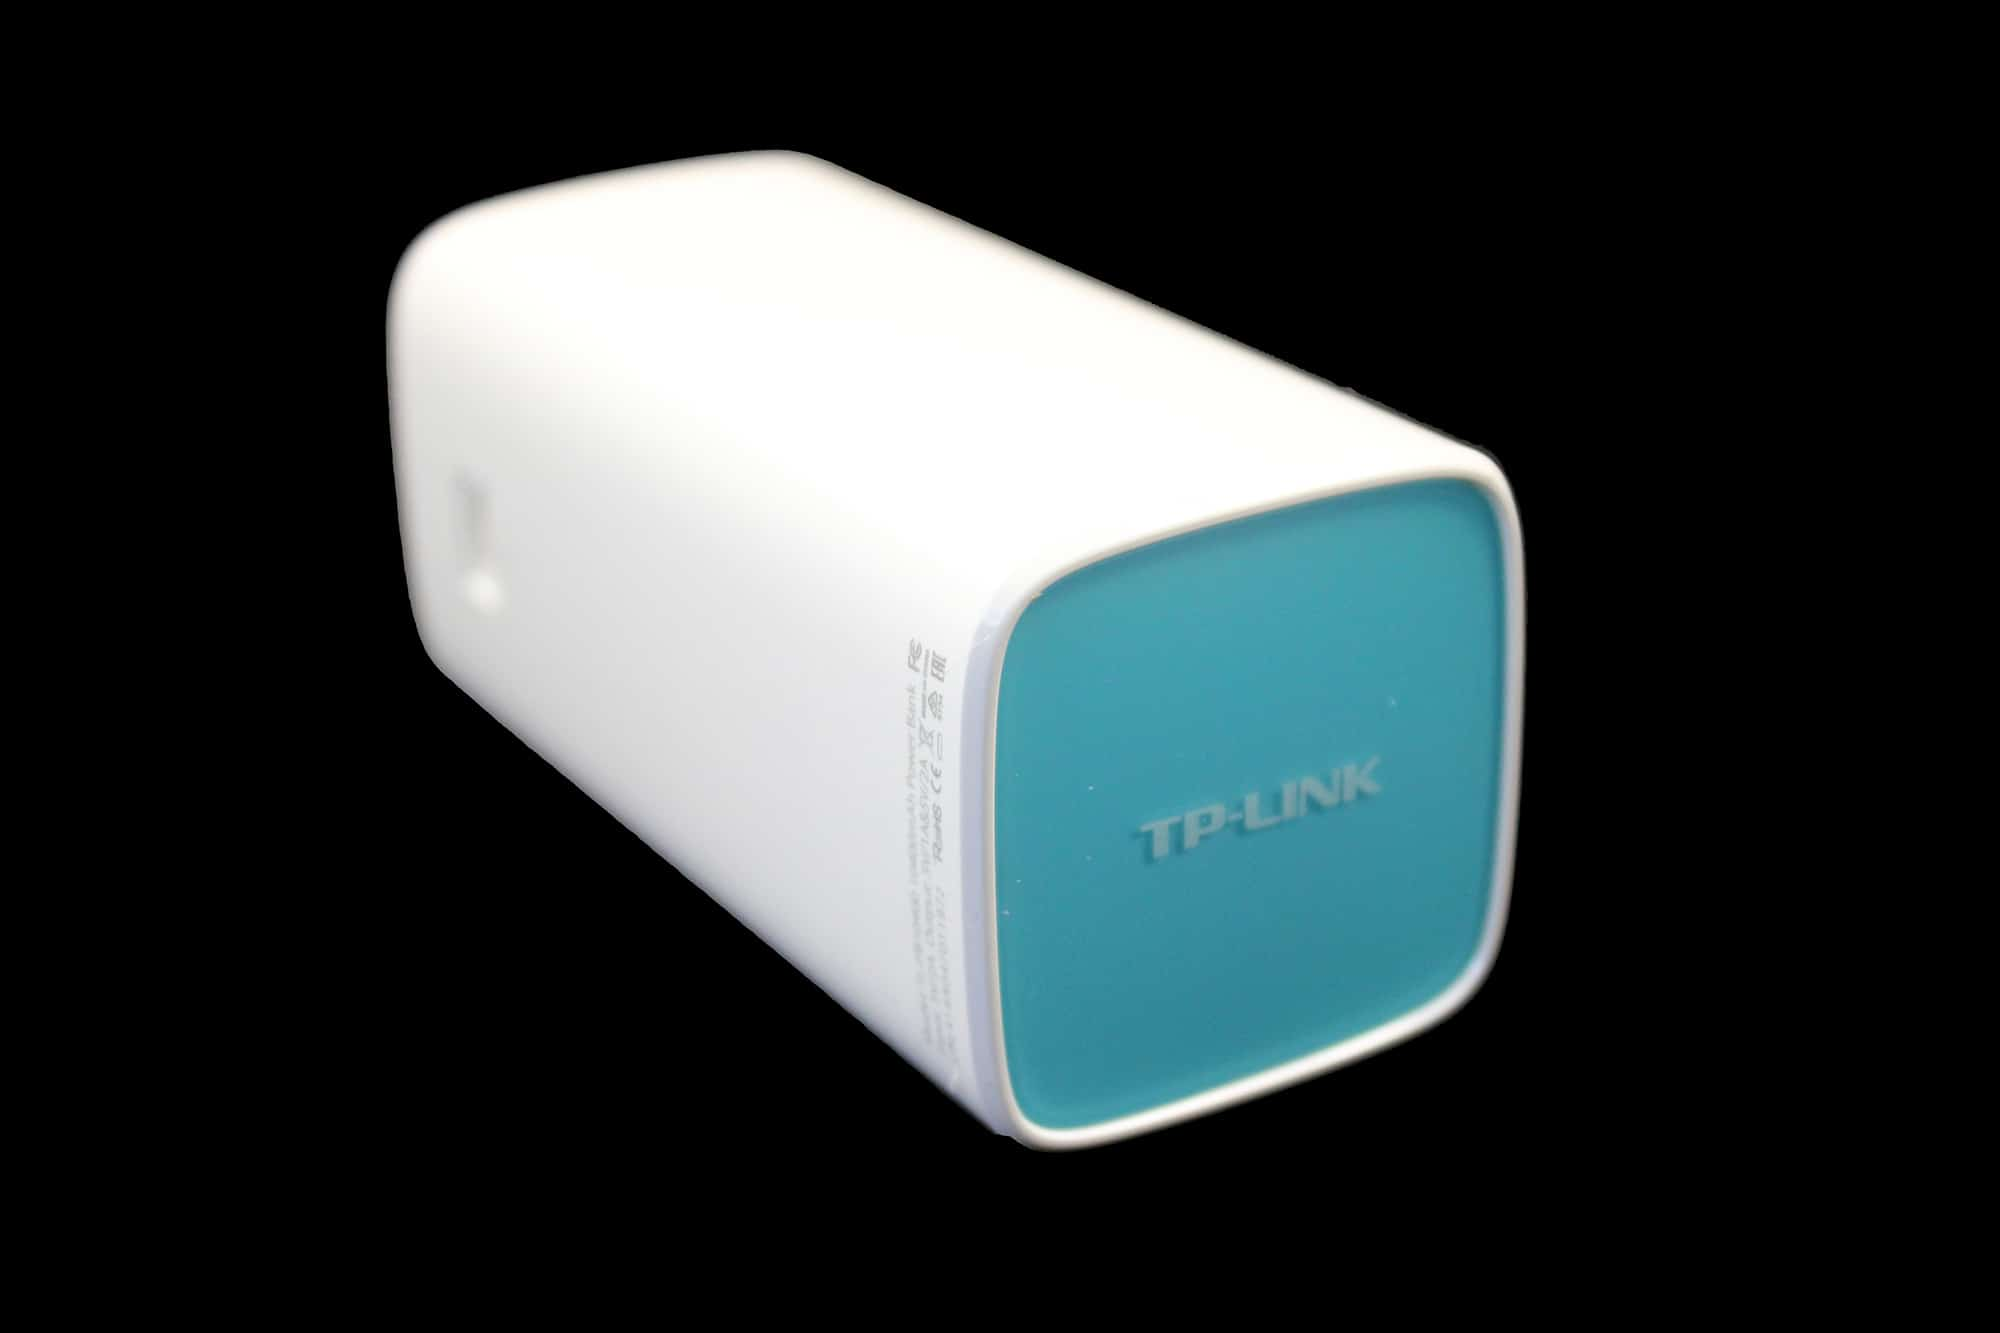 Photo of Die TP-Link 10400mAh Powerbank im Test